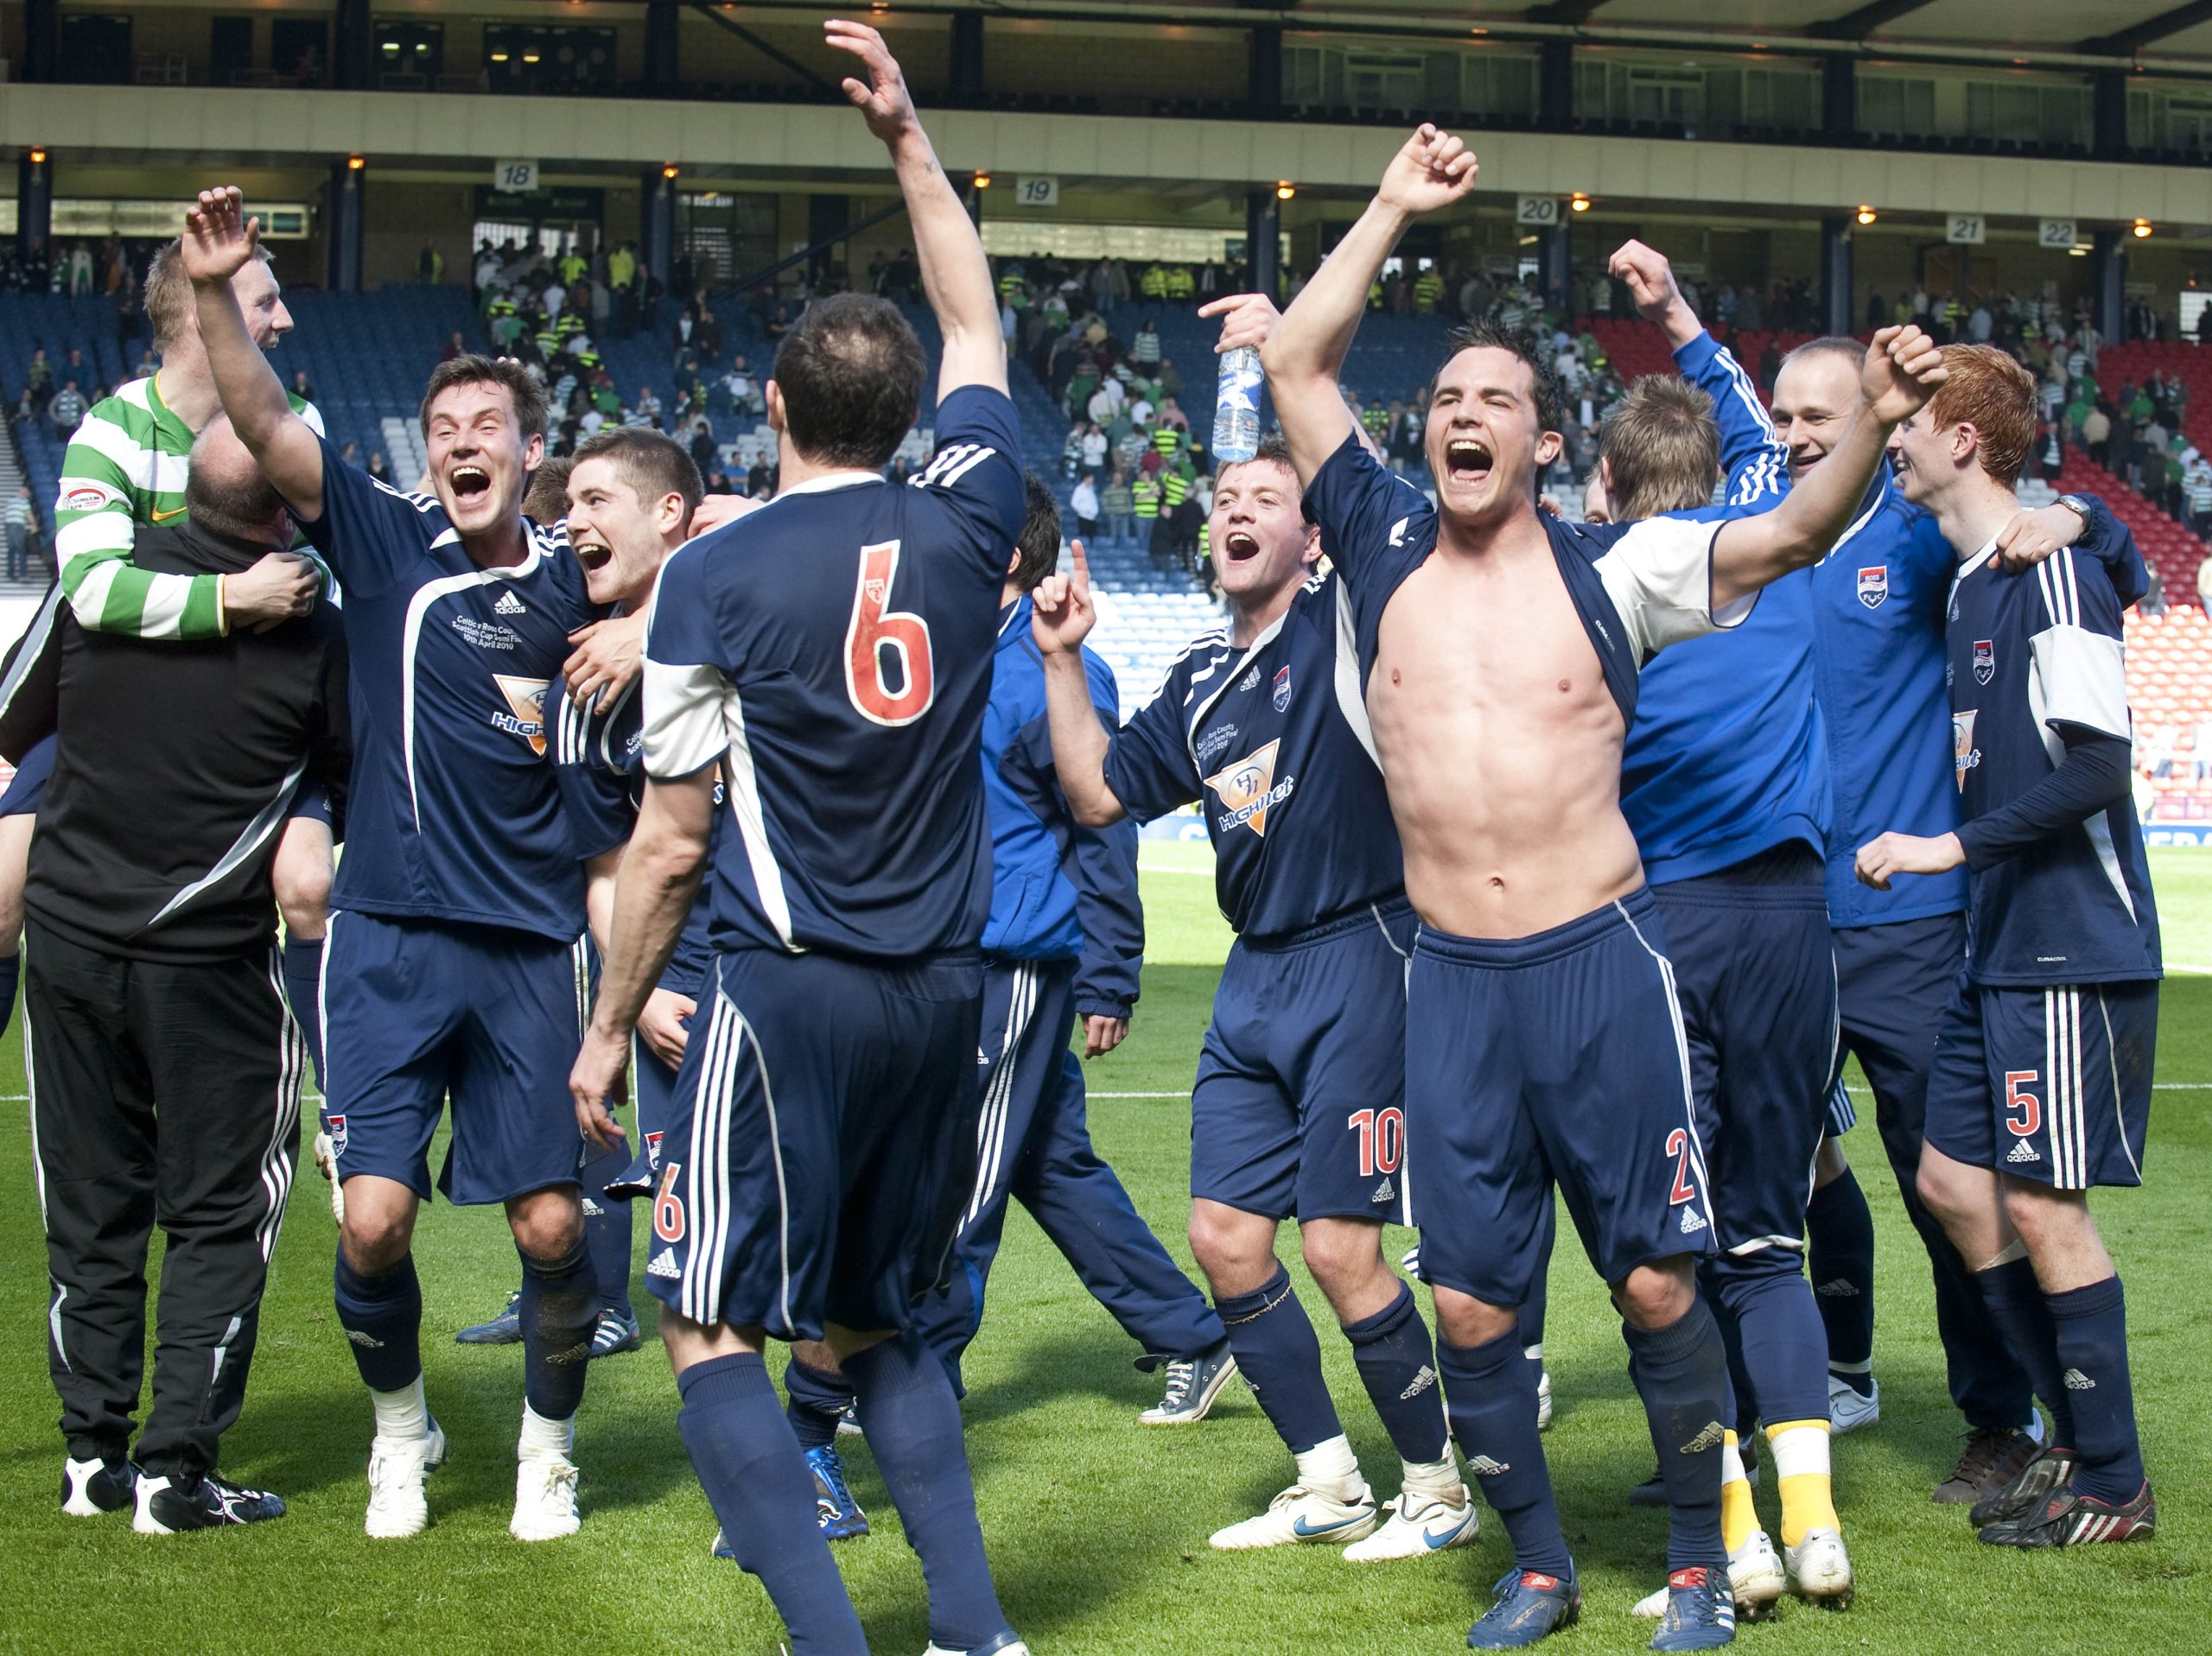 Ross County's players celebrate defeating Celtic in their Scottish Cup semi-final in 2010.